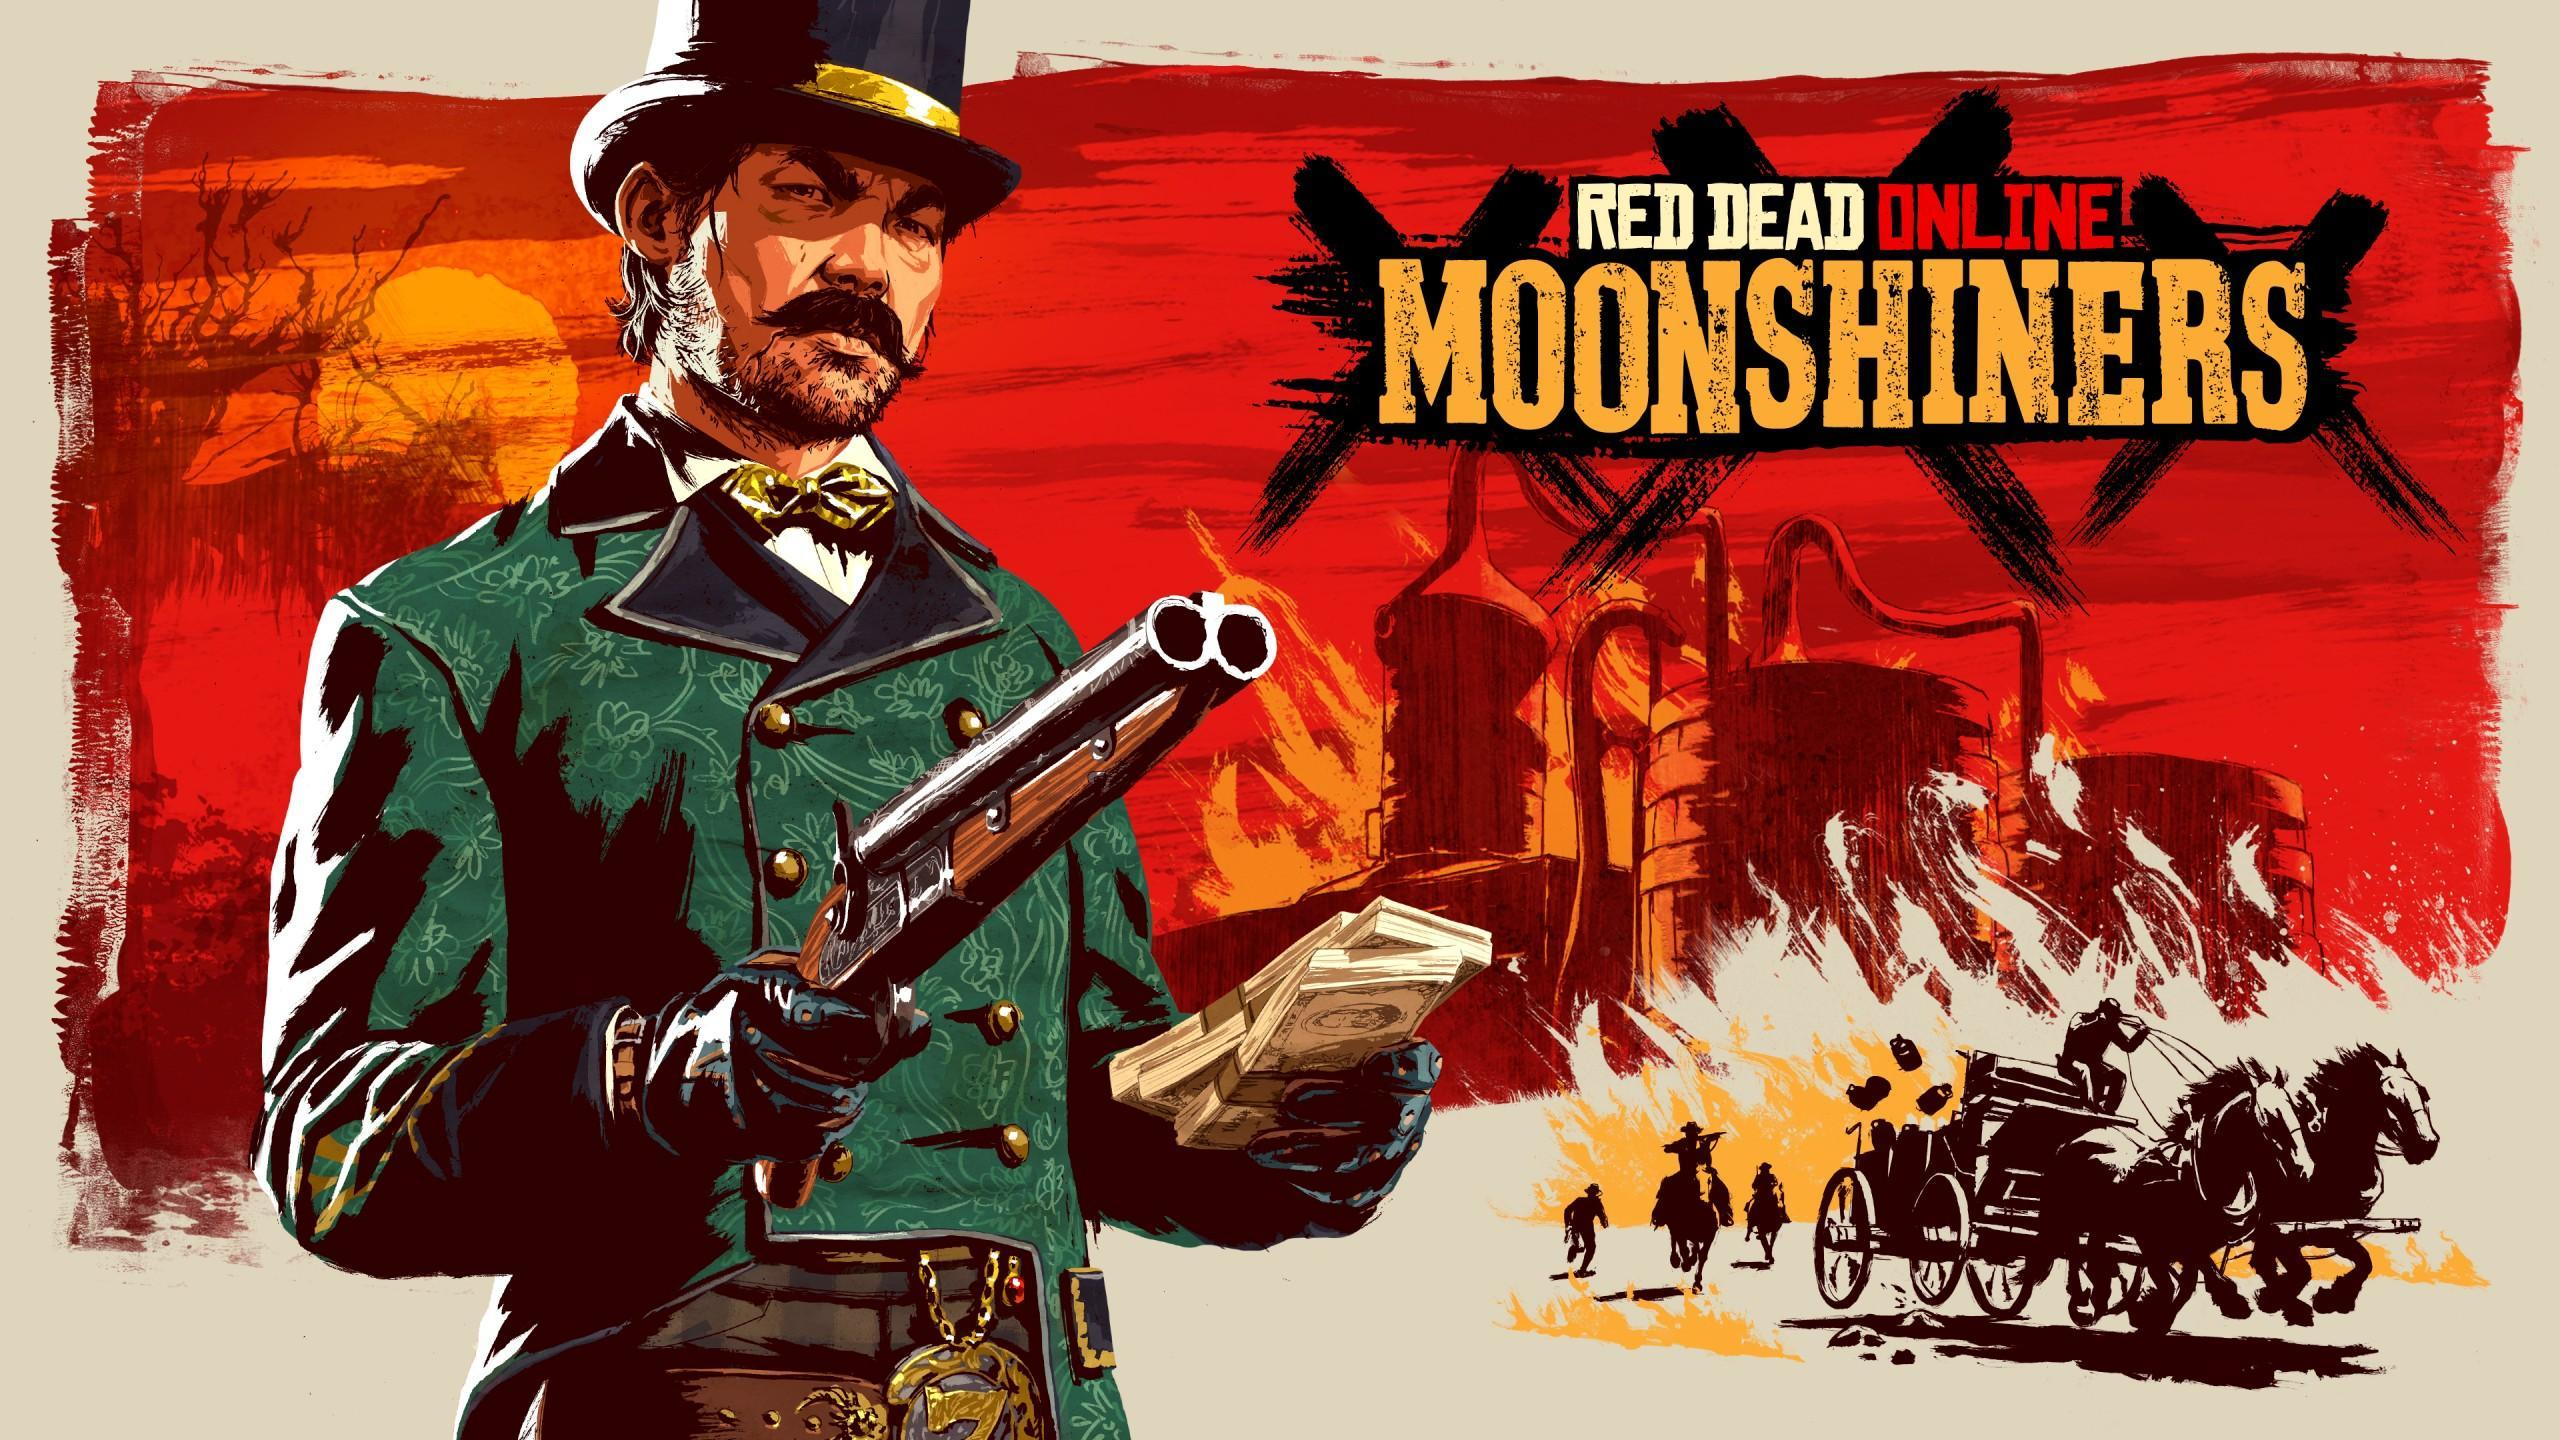 Red Dead Online: Moonshiners A New Frontier Pursuit Update Coming on December 13th